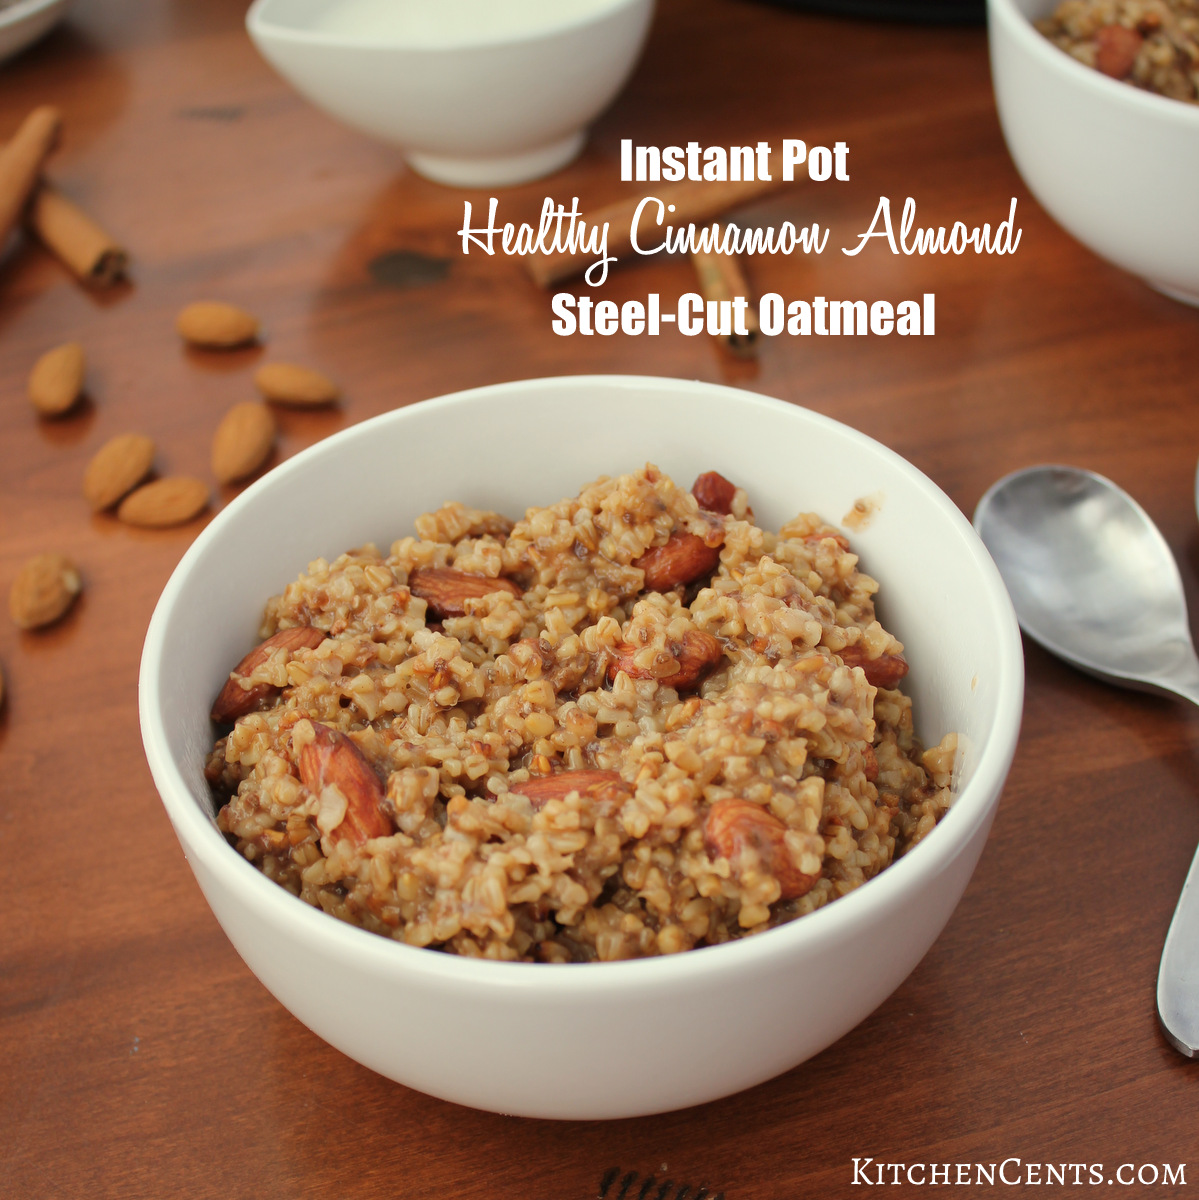 Instant Pot Healthy Cinnamon Almond Steel-Cut Oatmeal | KitchenCents.com